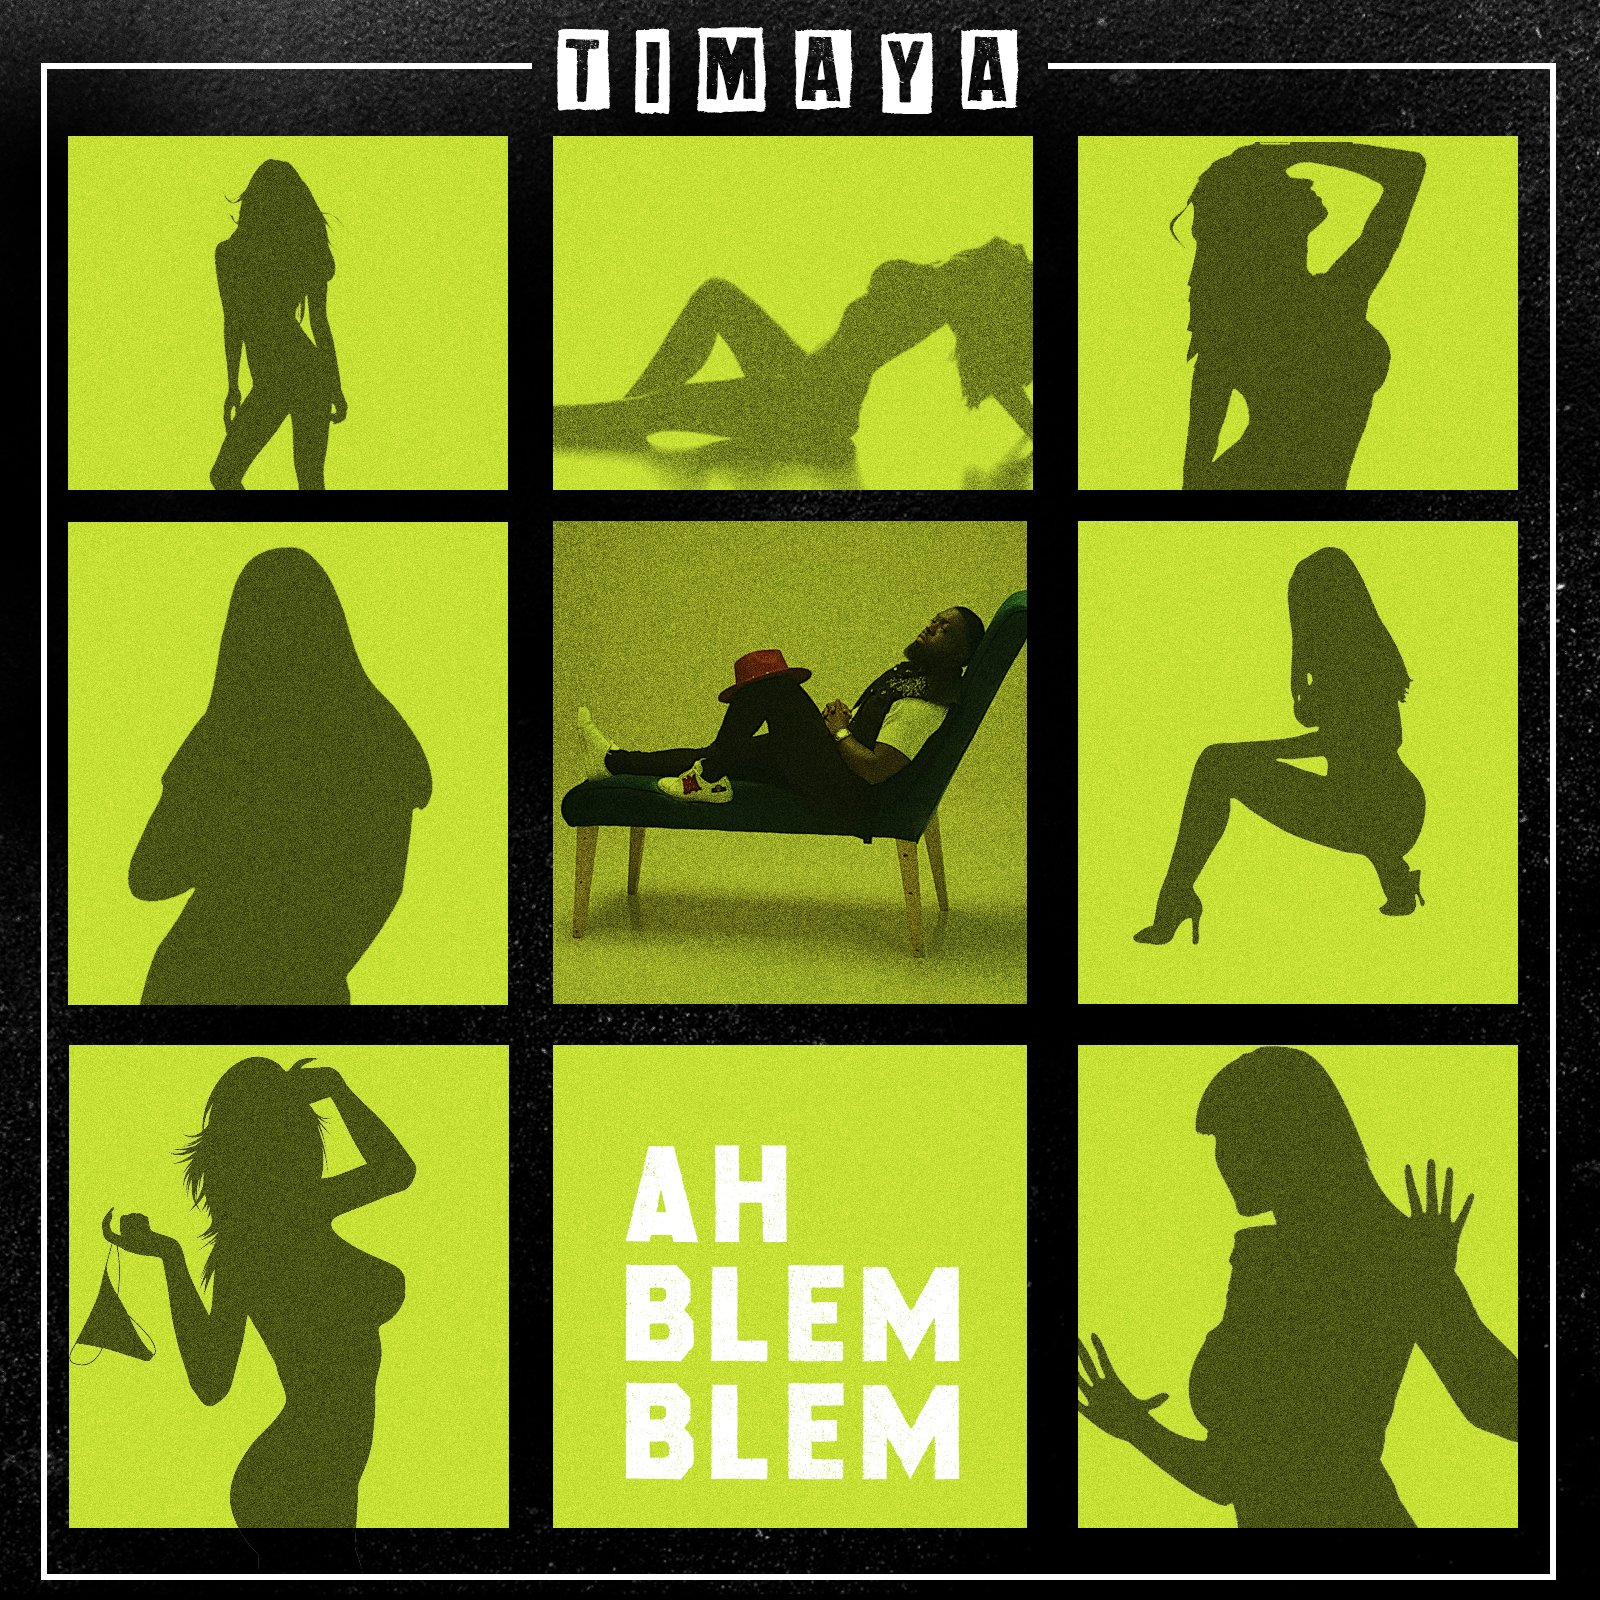 VIDEO: Timaya – Ah Blem Blem